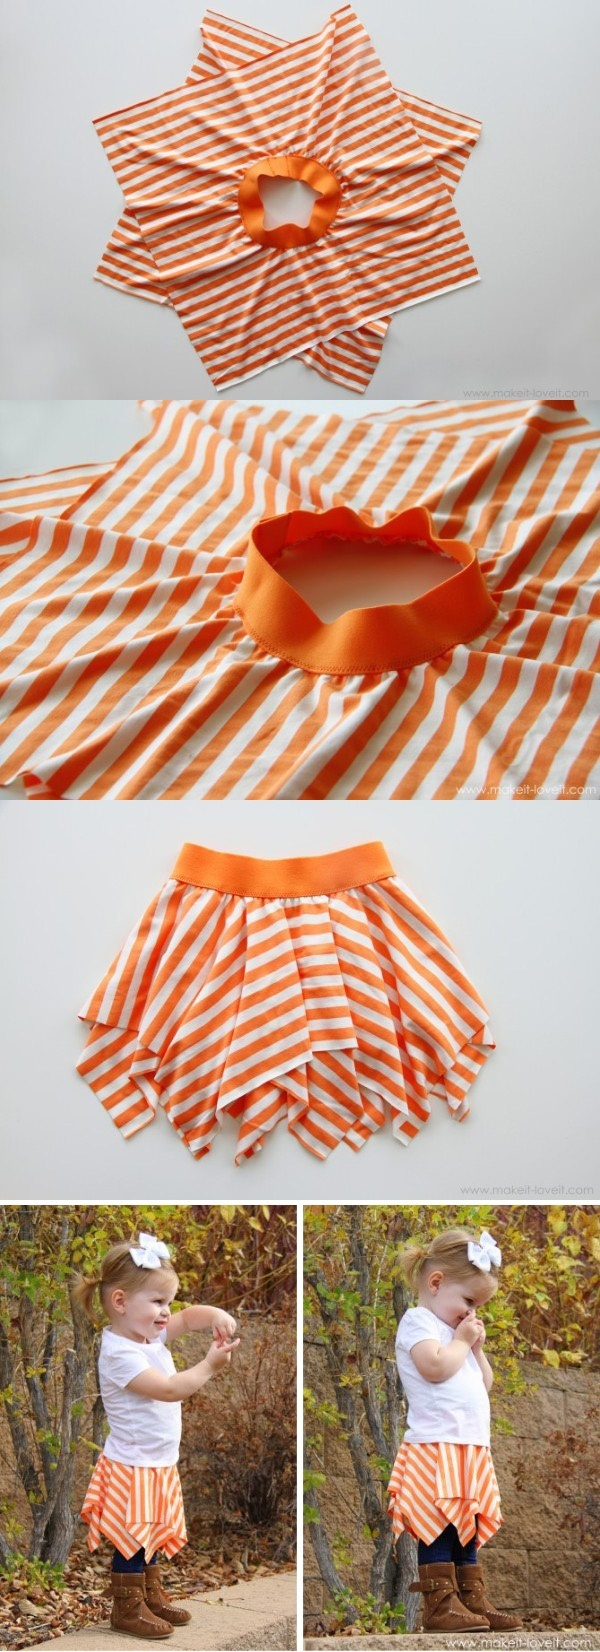 Cute skirt...wonder how this style would look for an adult.